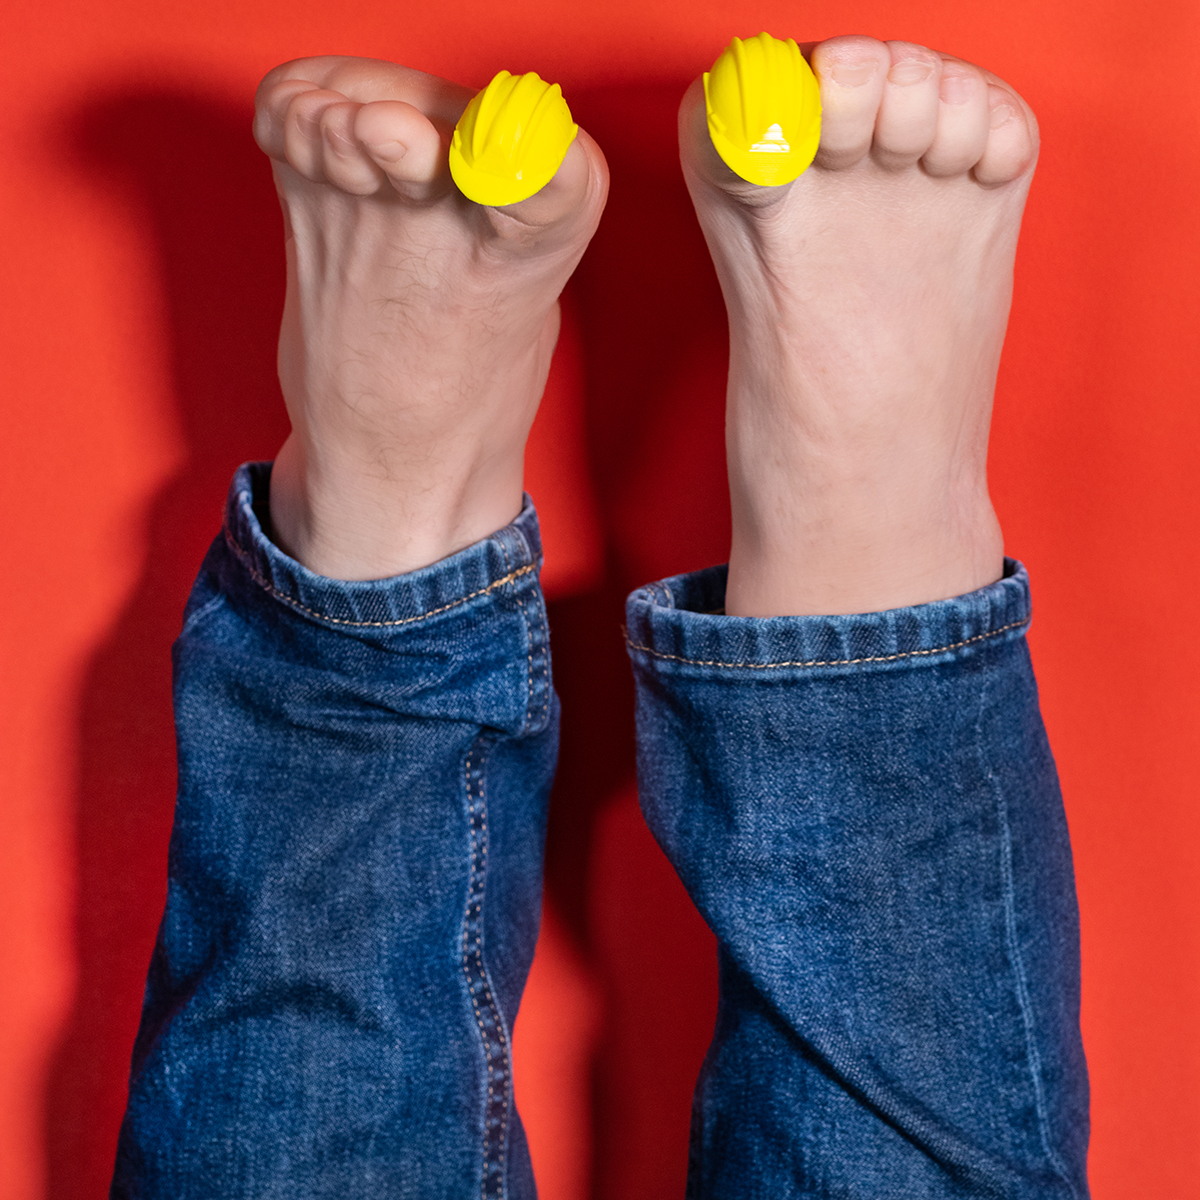 StubStoppers –  Unnecessary Inventions